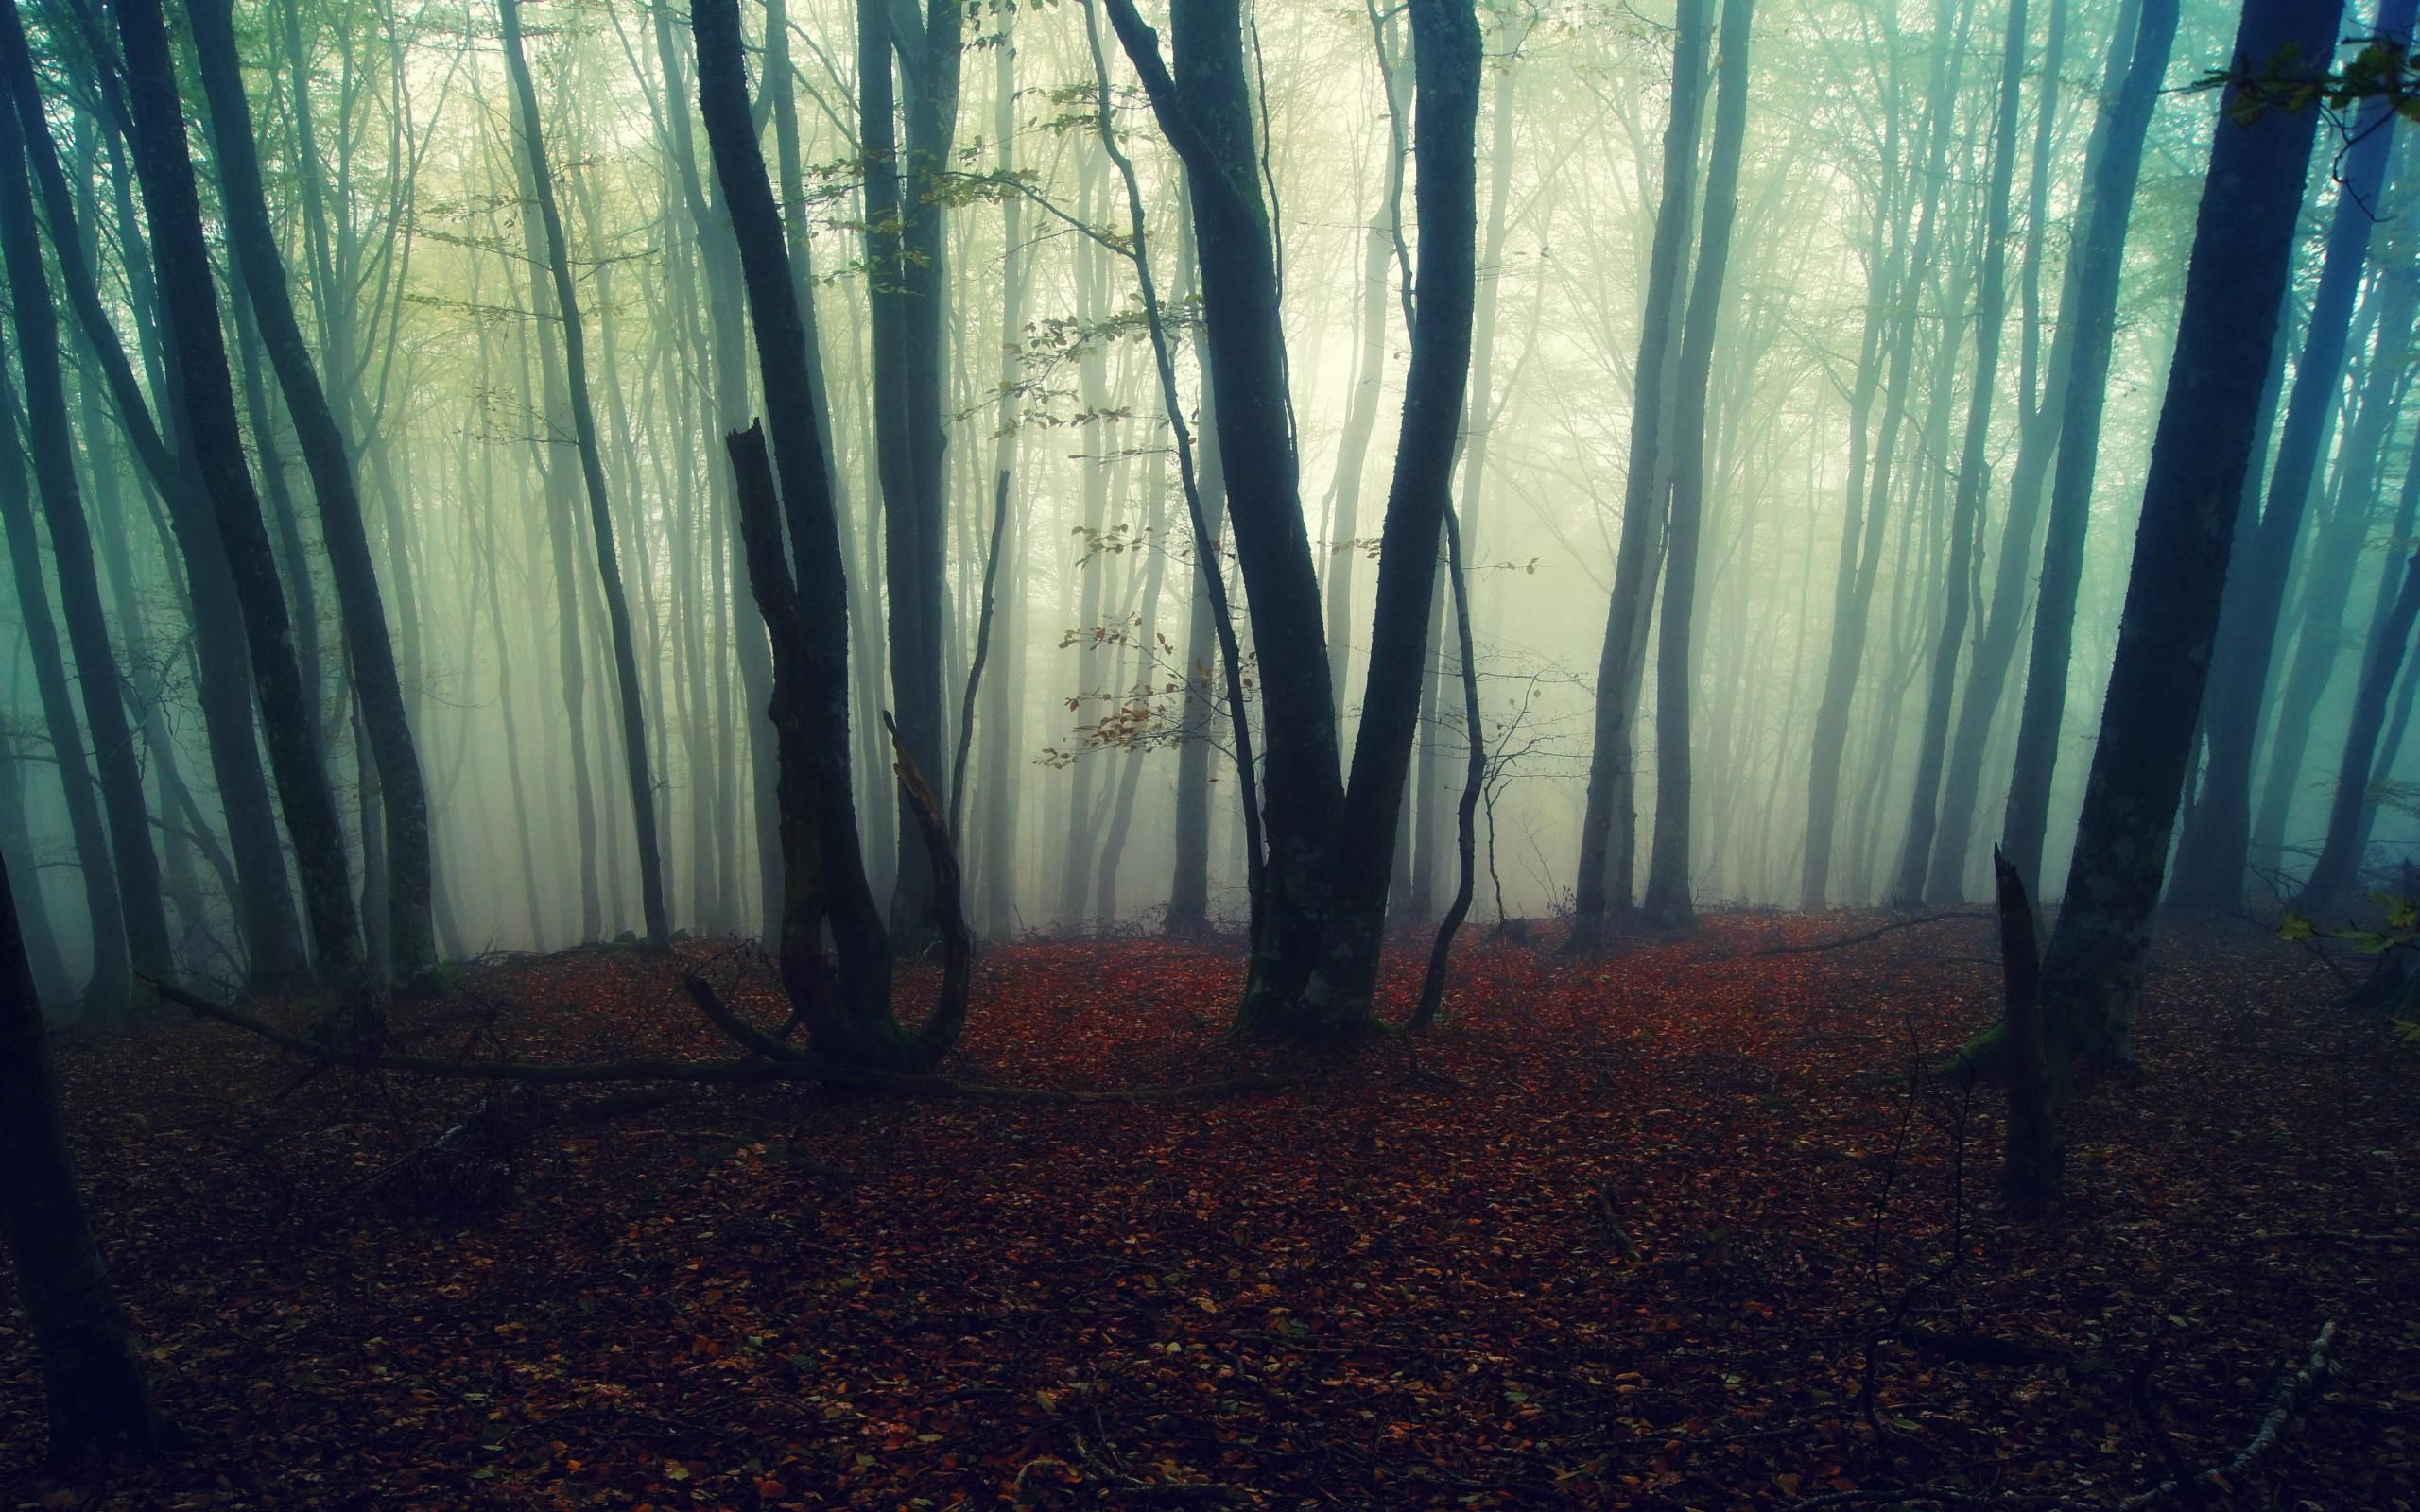 aesthetic foggy forest background